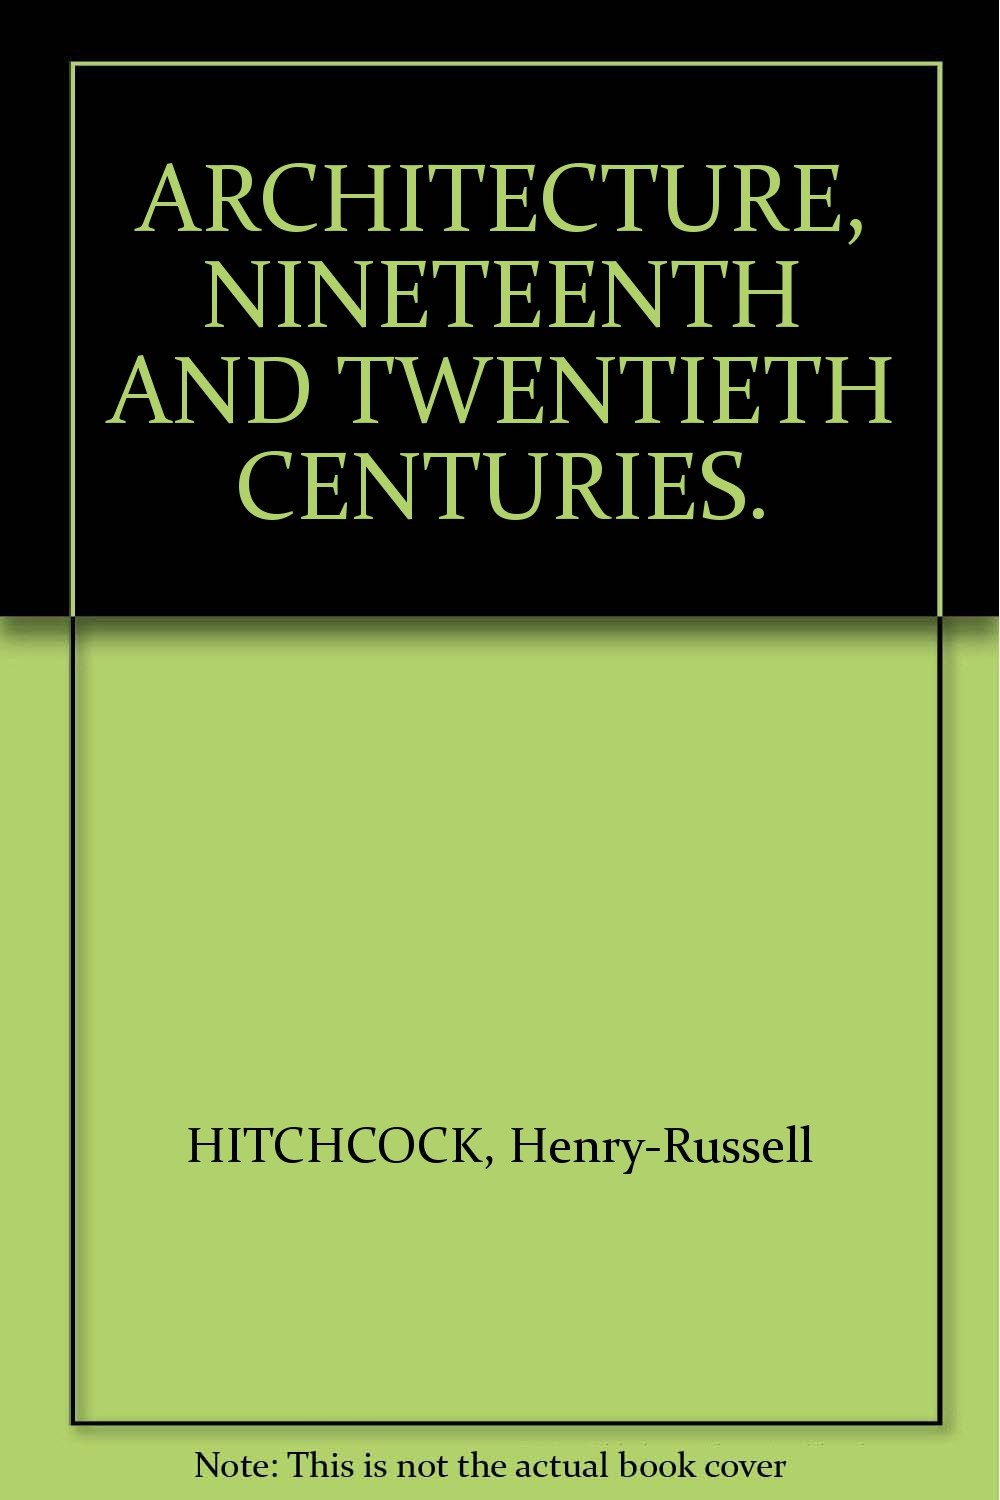 ARCHITECTURE, NINETEENTH AND TWENTIETH CENTURIES